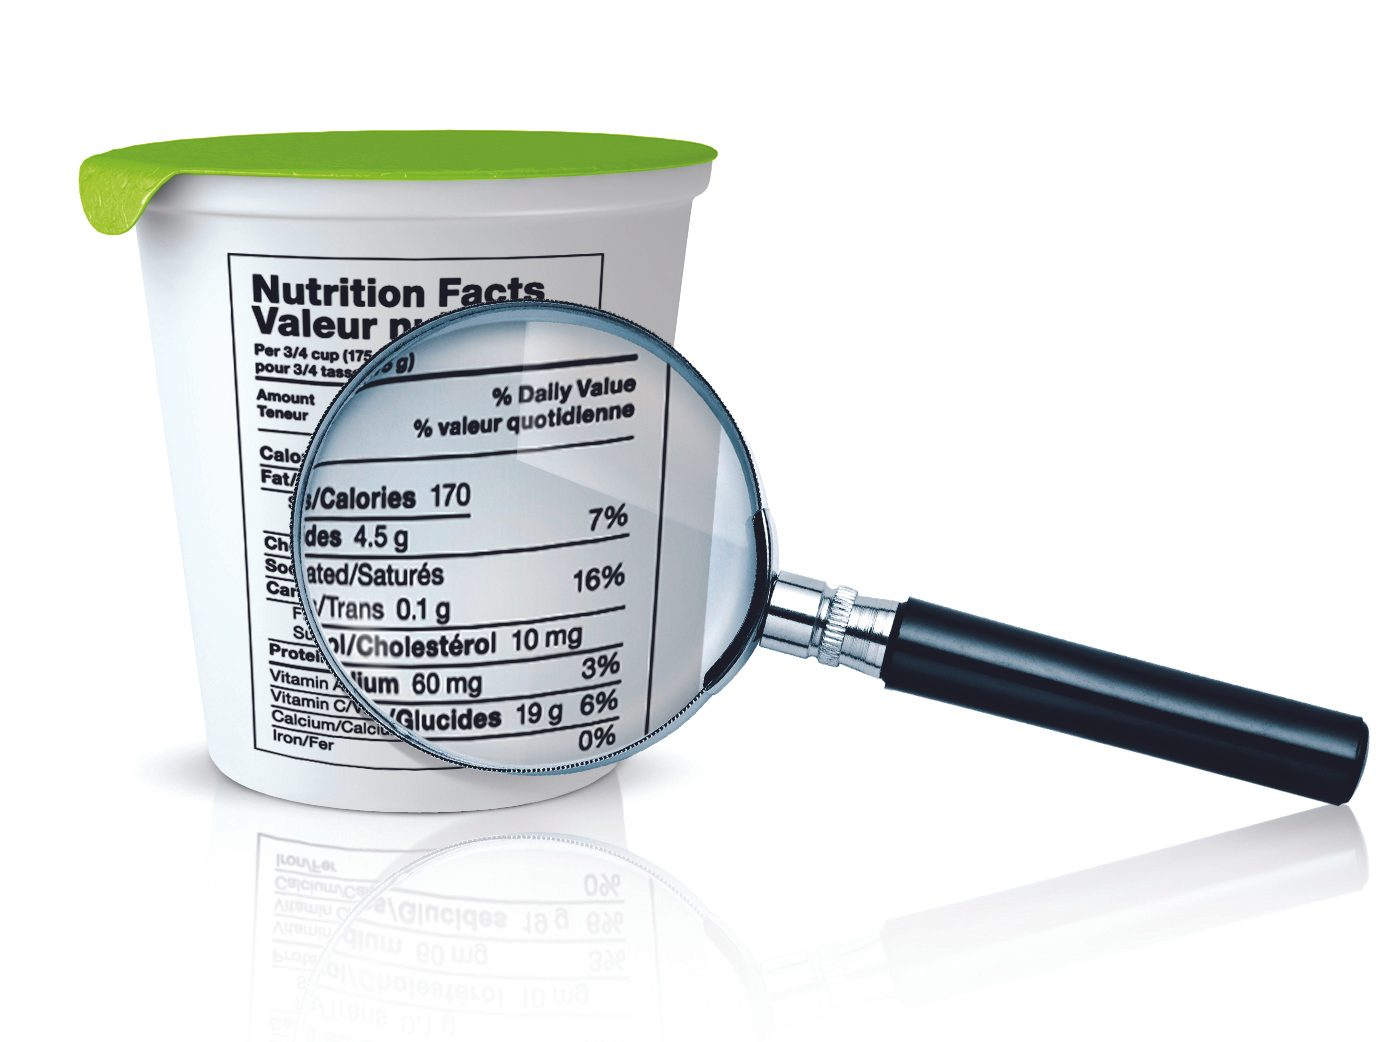 Reading Nutrition Facts: SERVING SIZE